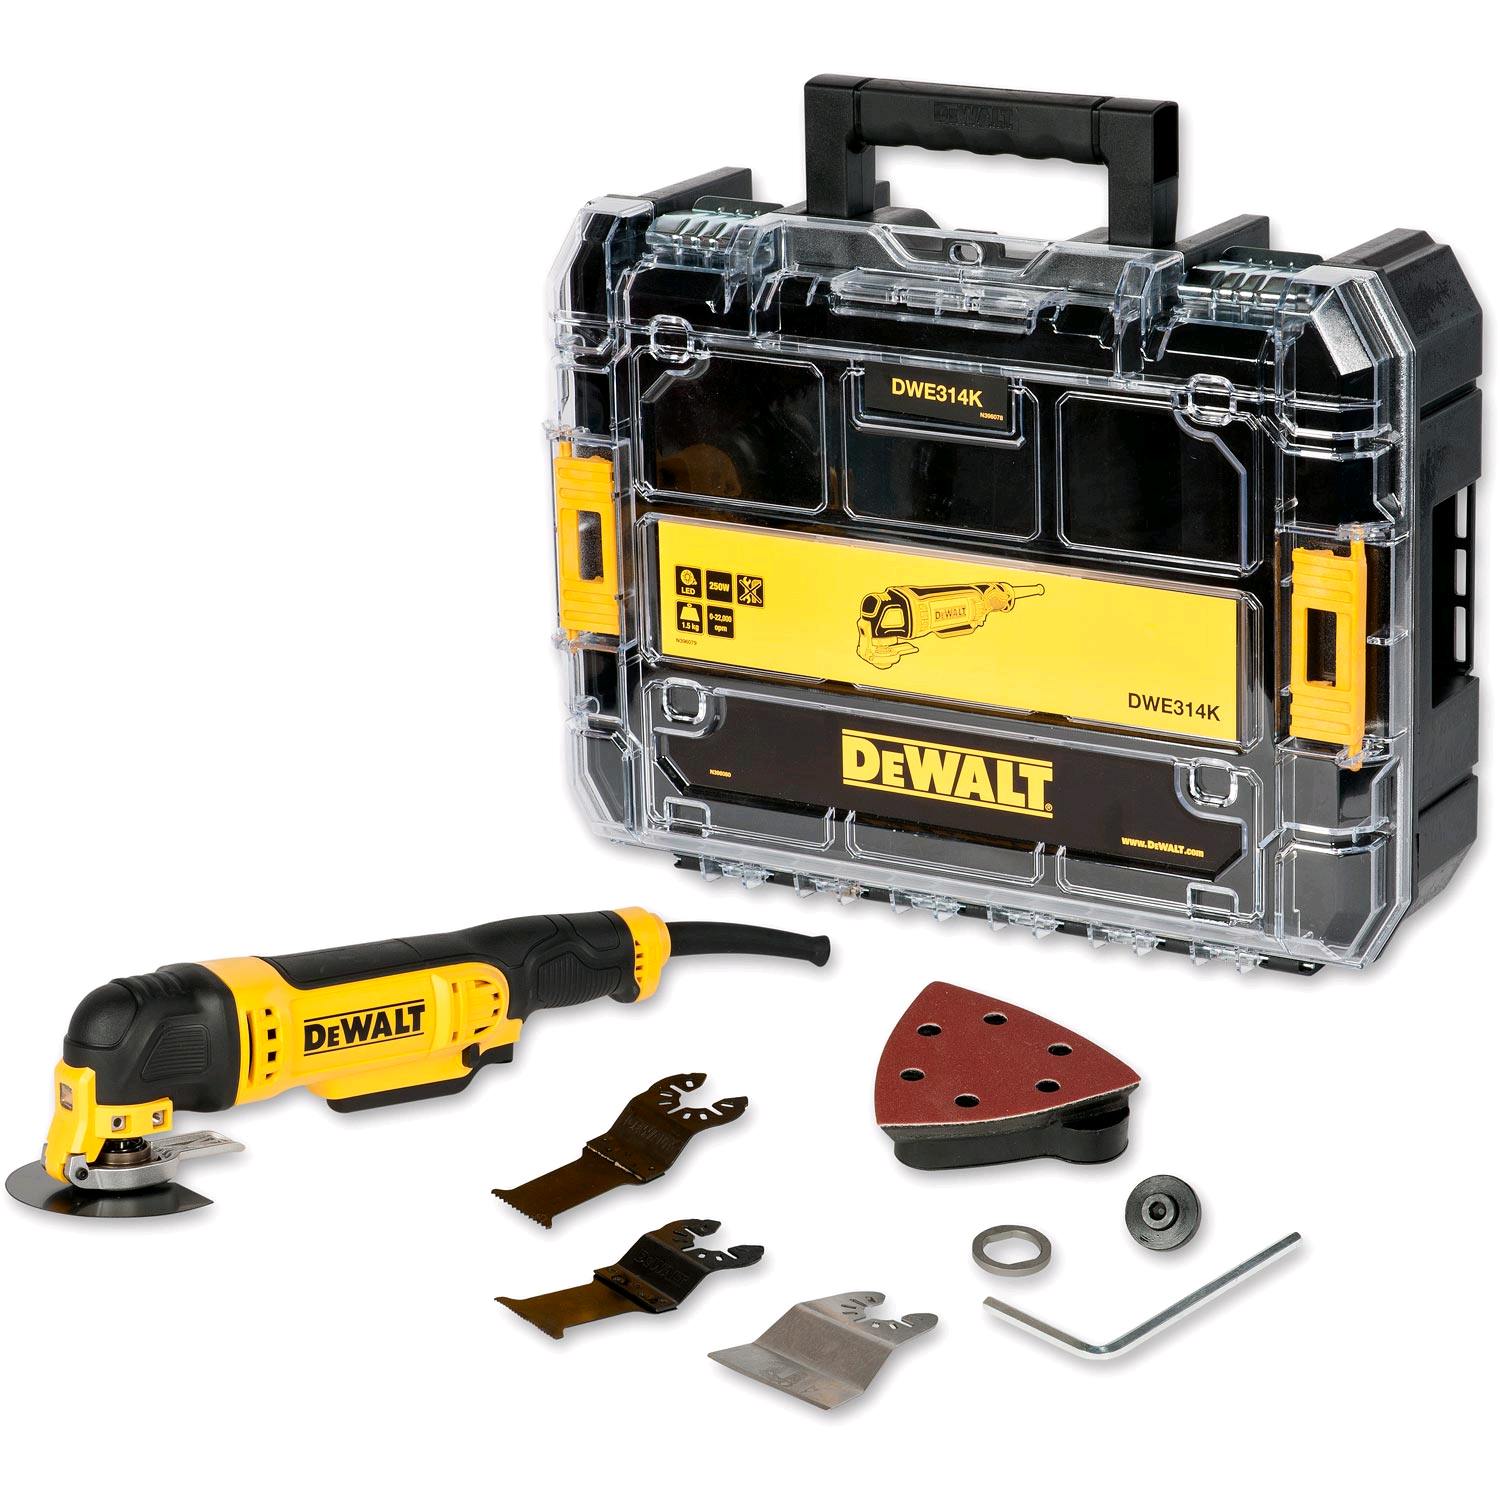 DeWalt Multi-Function Tool & Accessories